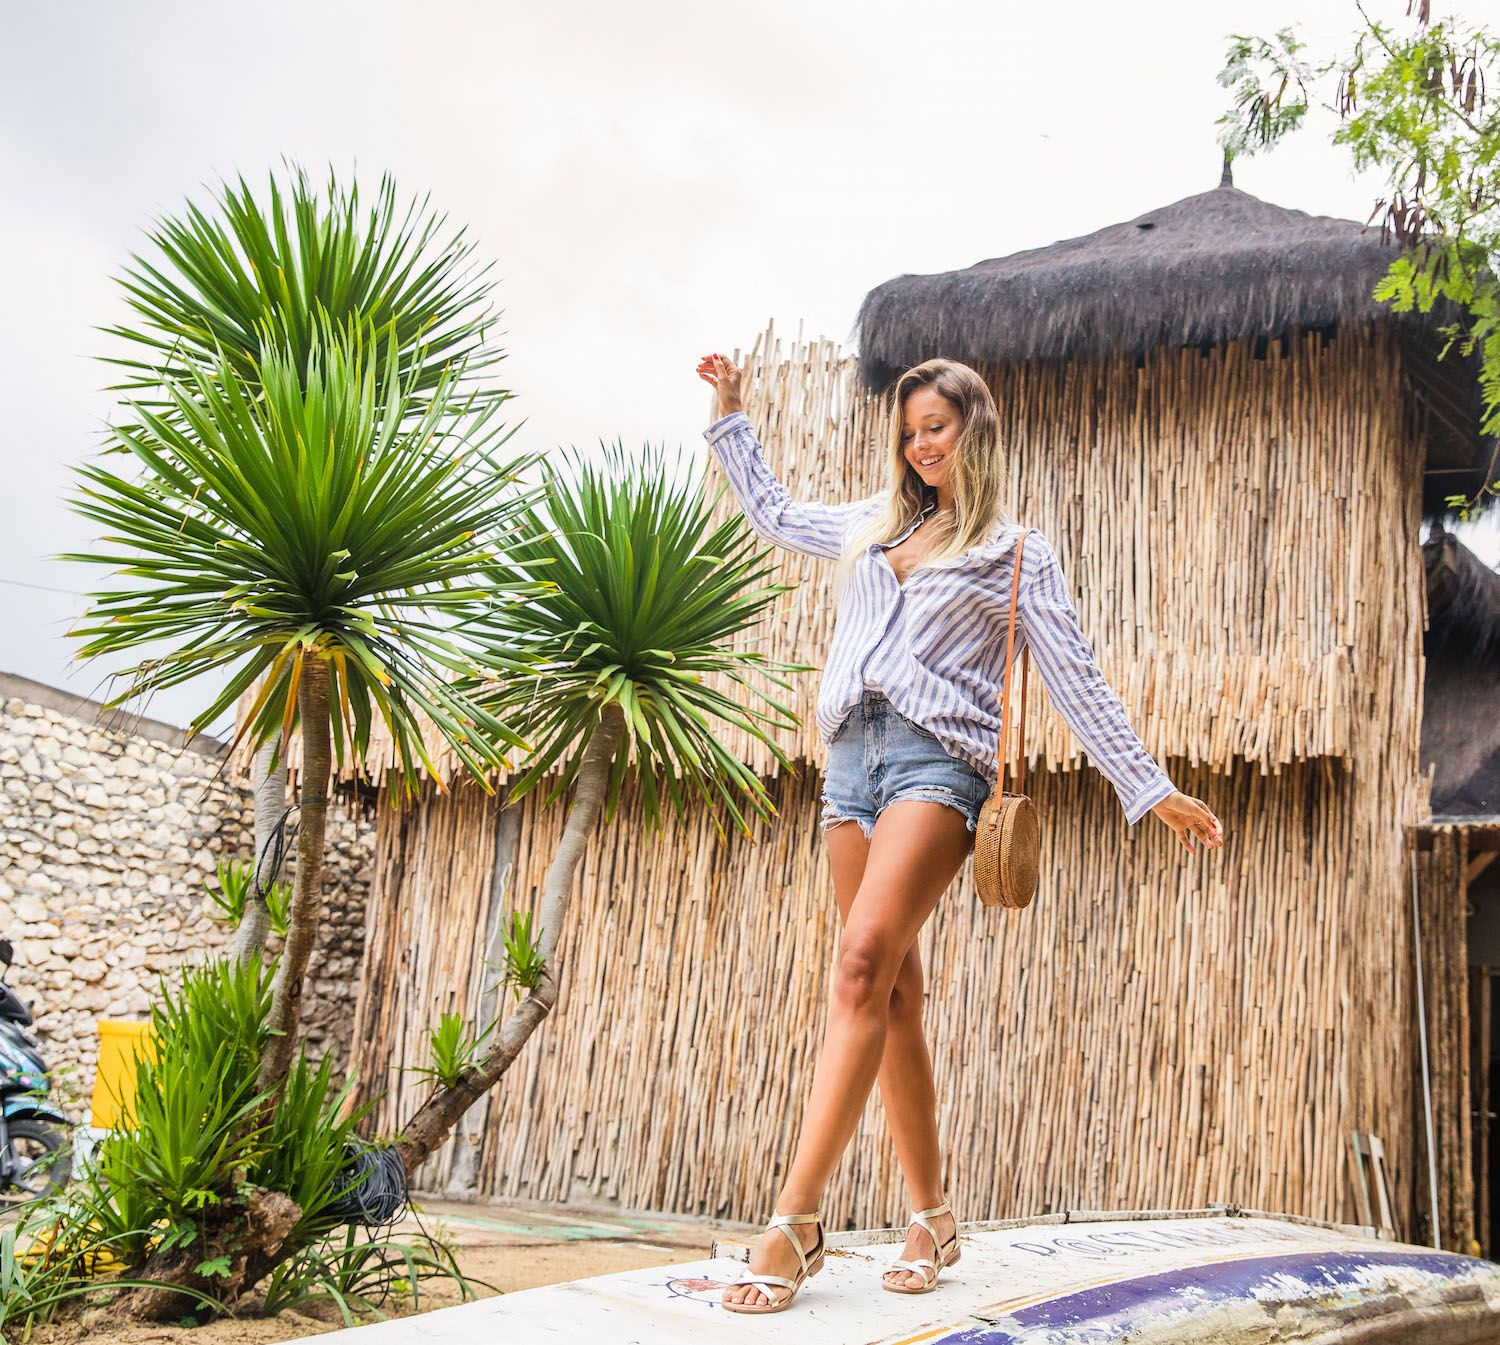 Bared_Footwear_La_Brisa_Bali_Travel_Summer_Womens_Campaign_Loon_Gold_Leather_Sandals